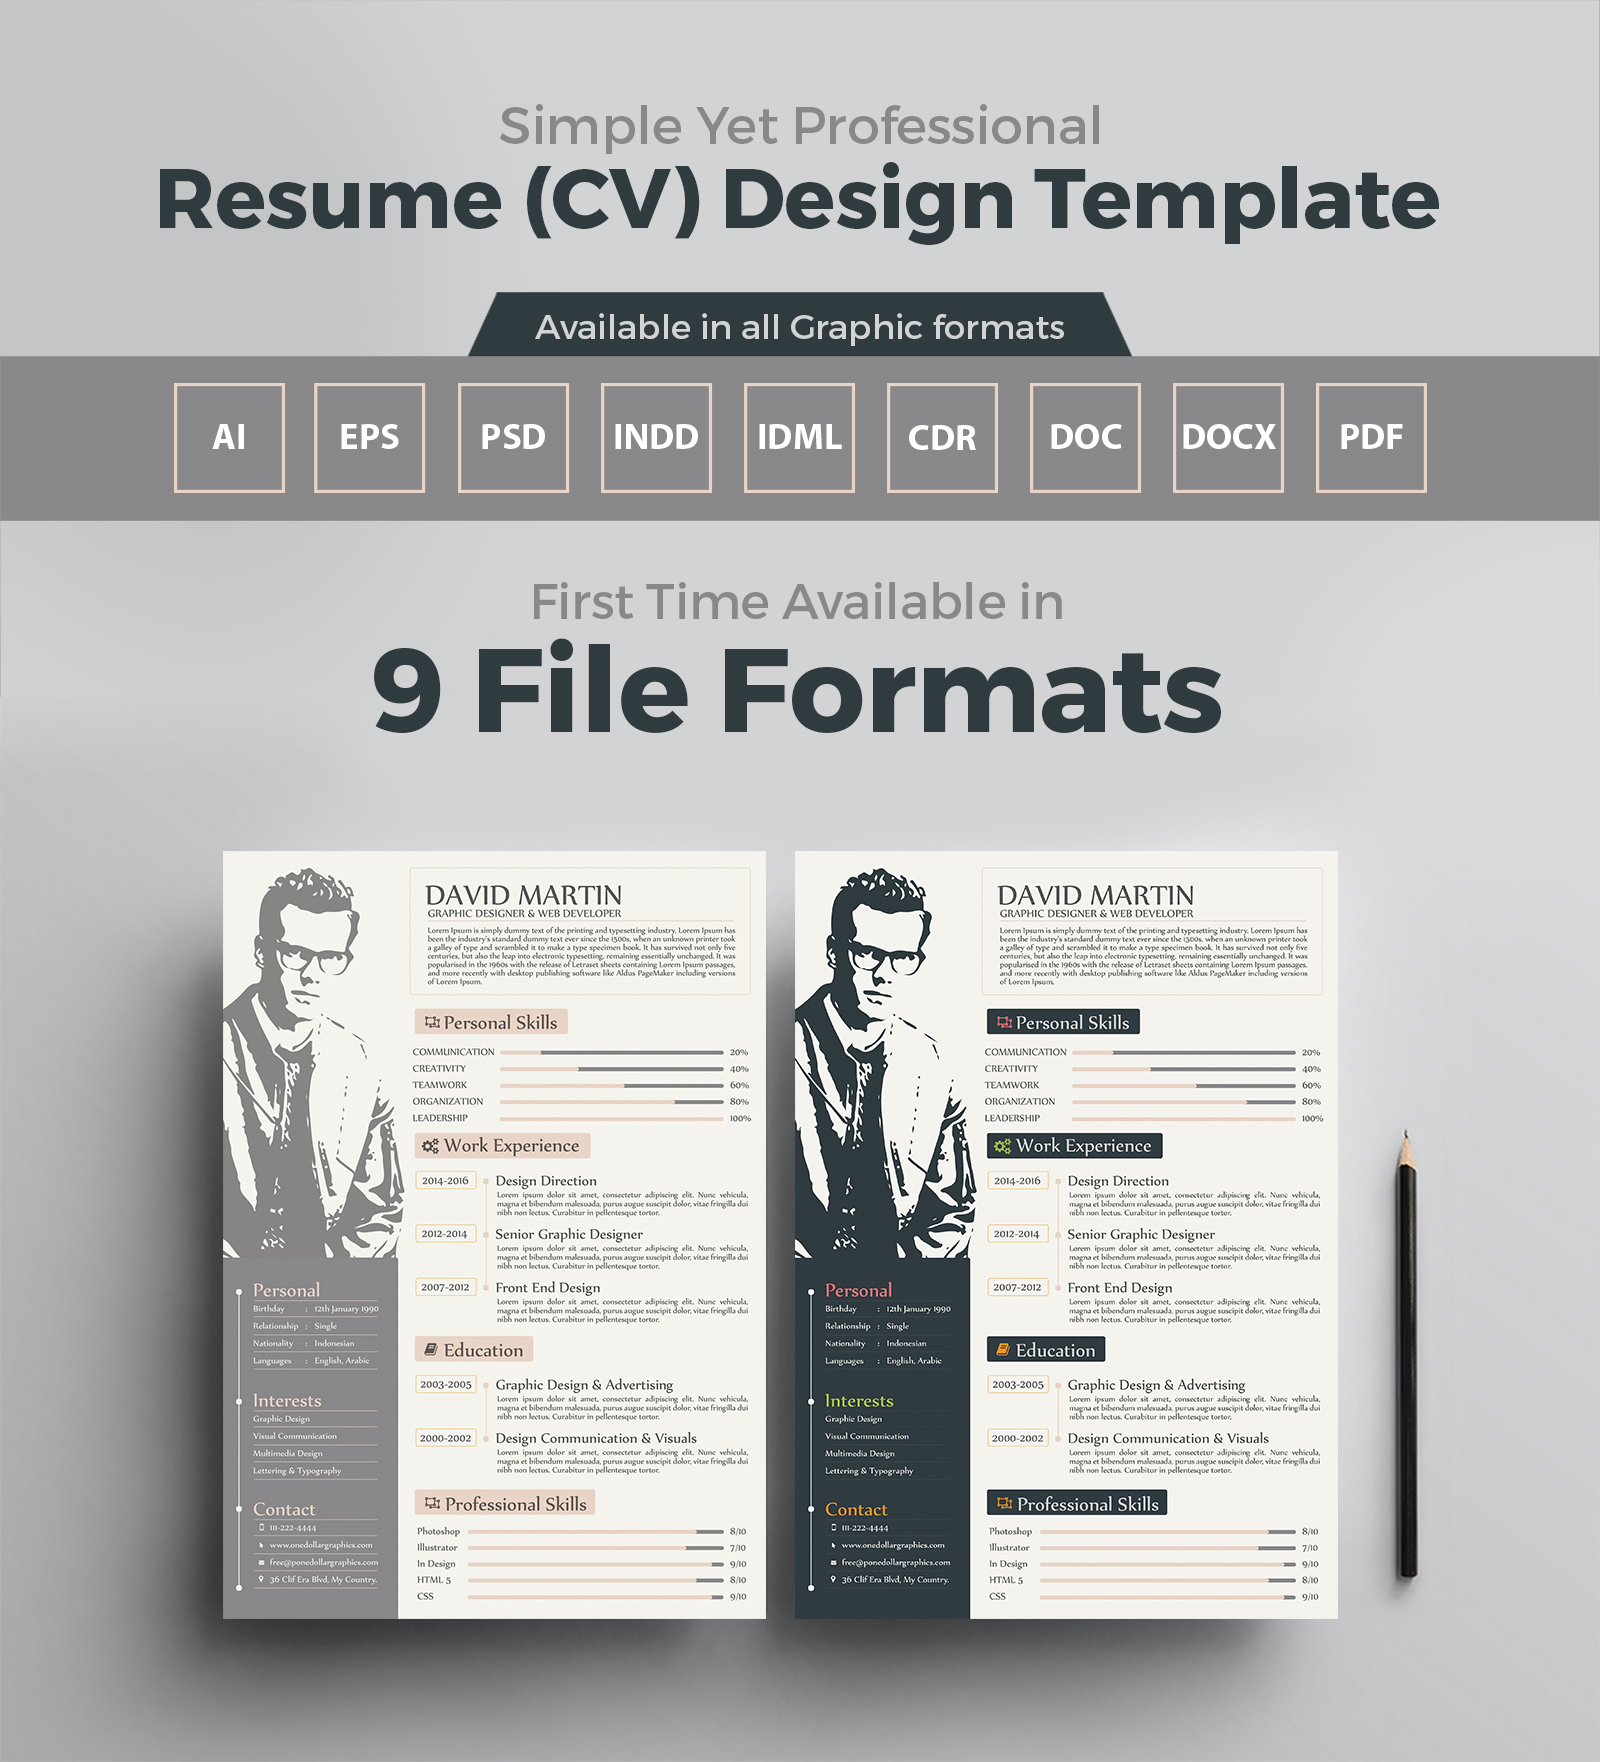 Simple yet professional resume cv design templates in ai eps psd pdf cdr doc docx indd for Microsoft word graphic design